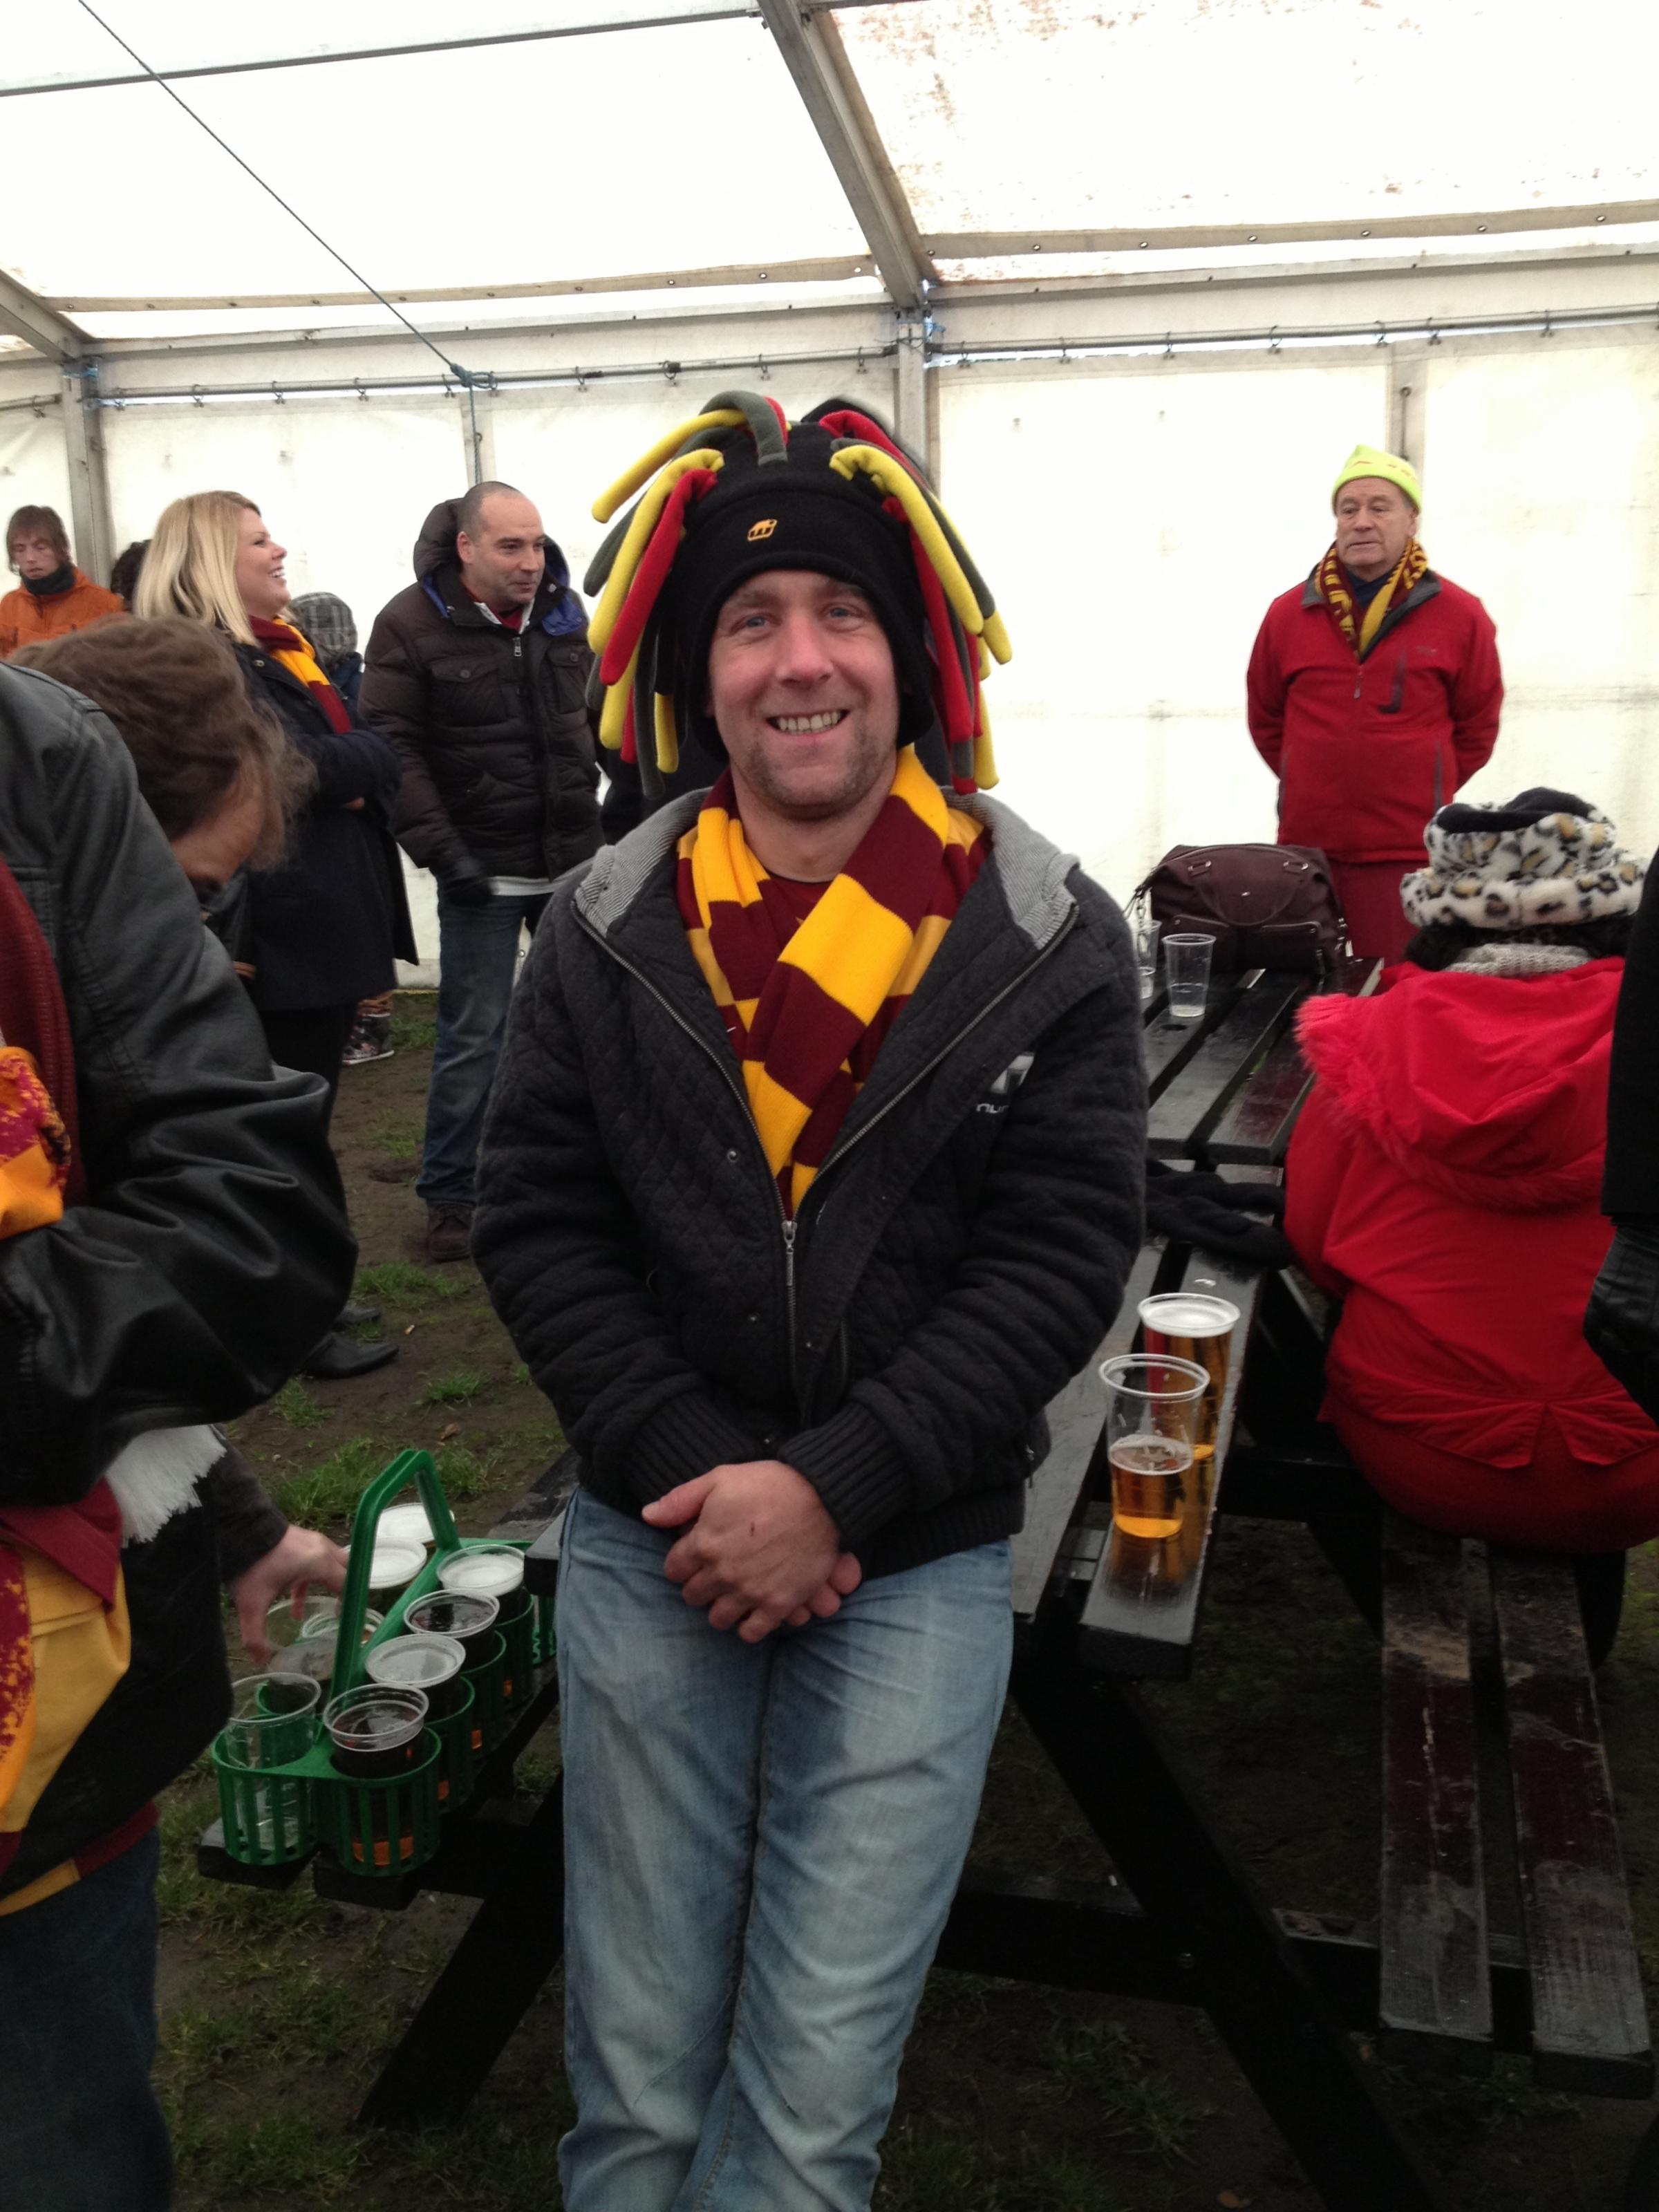 The funeral of Colin Harding, 39, will feature people wearing claret and amber, the colours of his beloved Bradford City